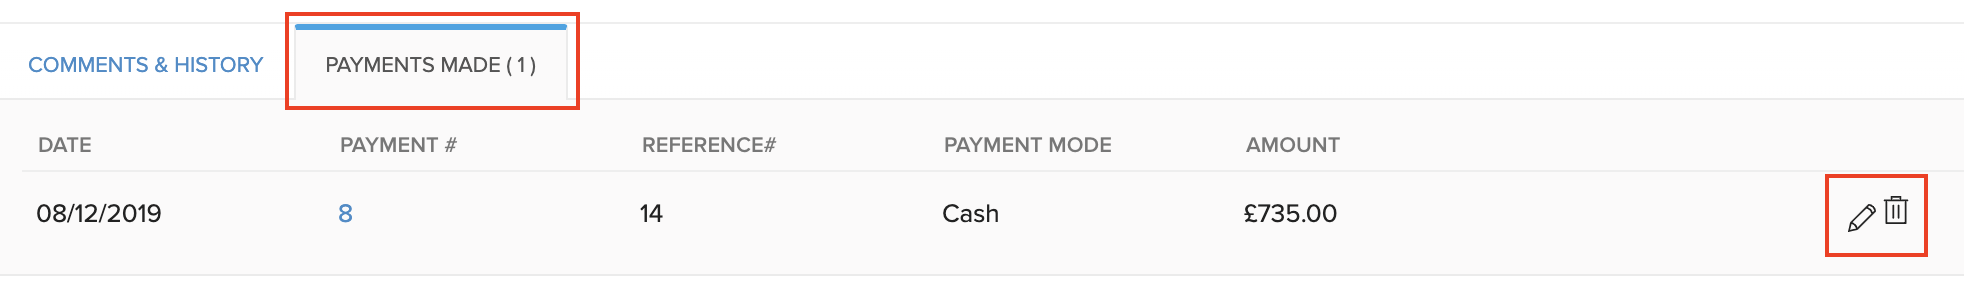 Payments Made Actions